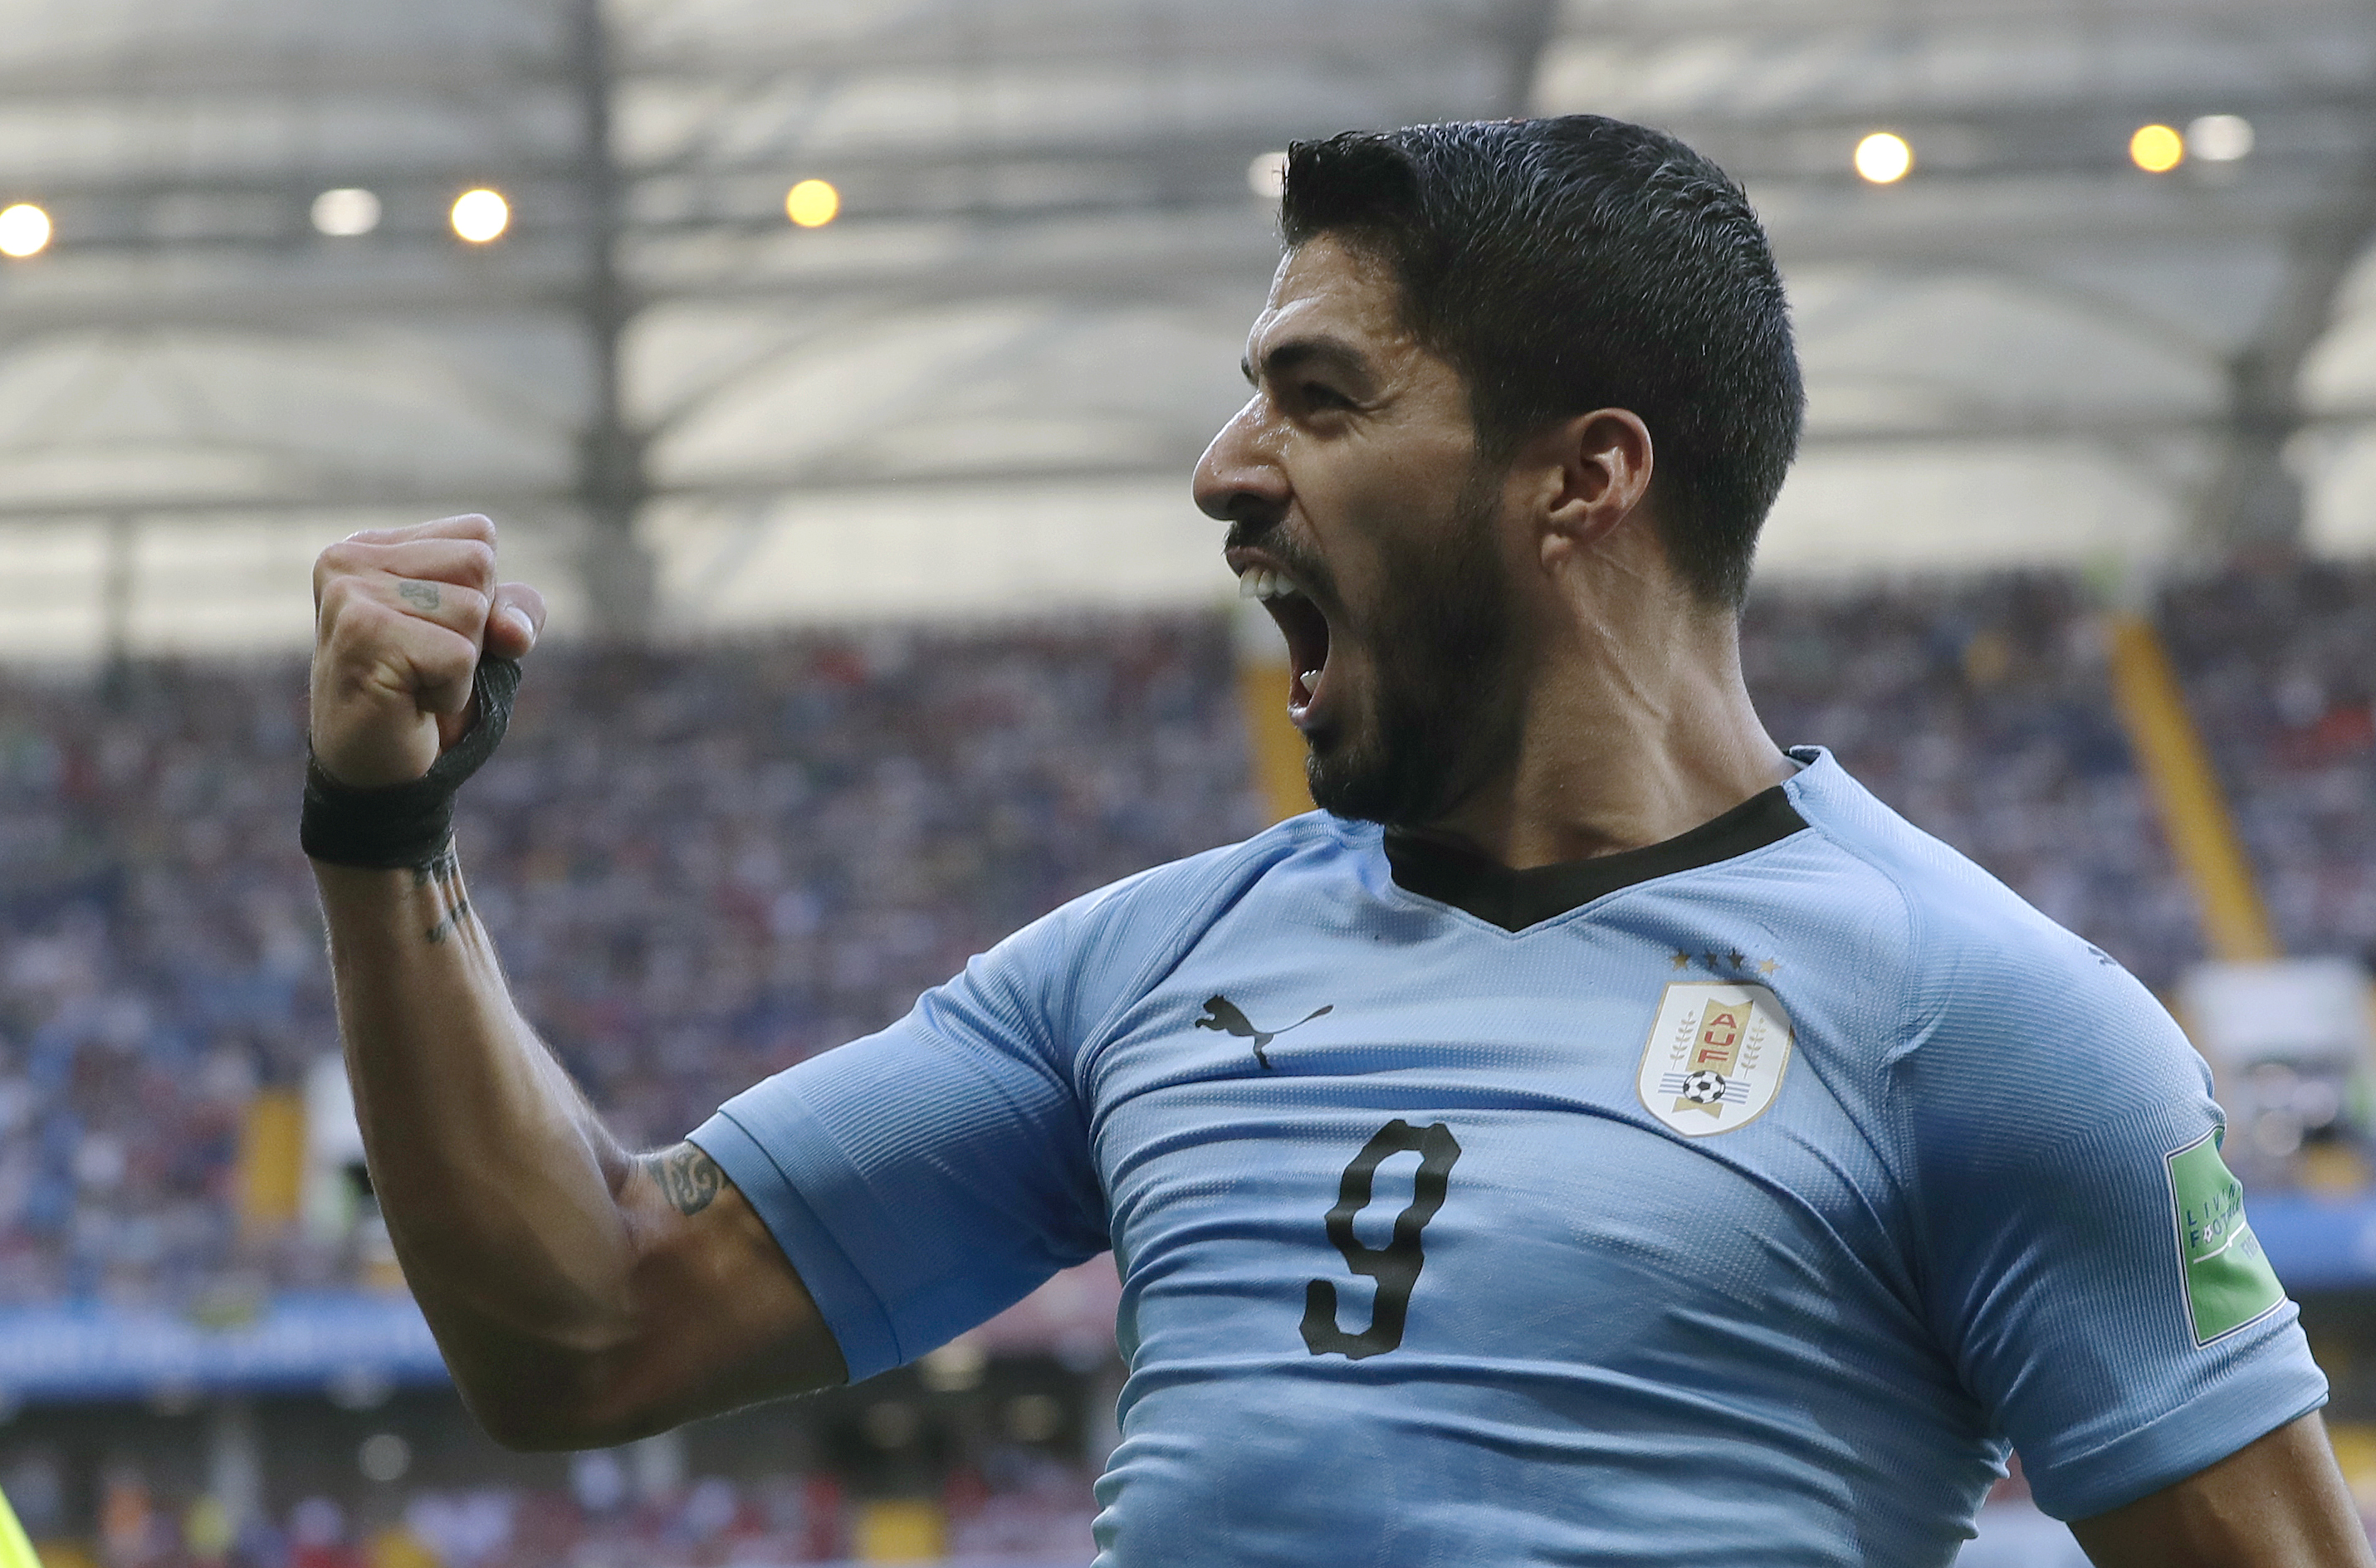 <div class='meta'><div class='origin-logo' data-origin='none'></div><span class='caption-text' data-credit='Andrew Medichini/AP Photo'>Uruguay's Luis Suarez celebrates scoring his side's first goal during the group A match against Saudi Arabia in Rostov Arena in Rostov-on-Don, Russia, June 20.</span></div>